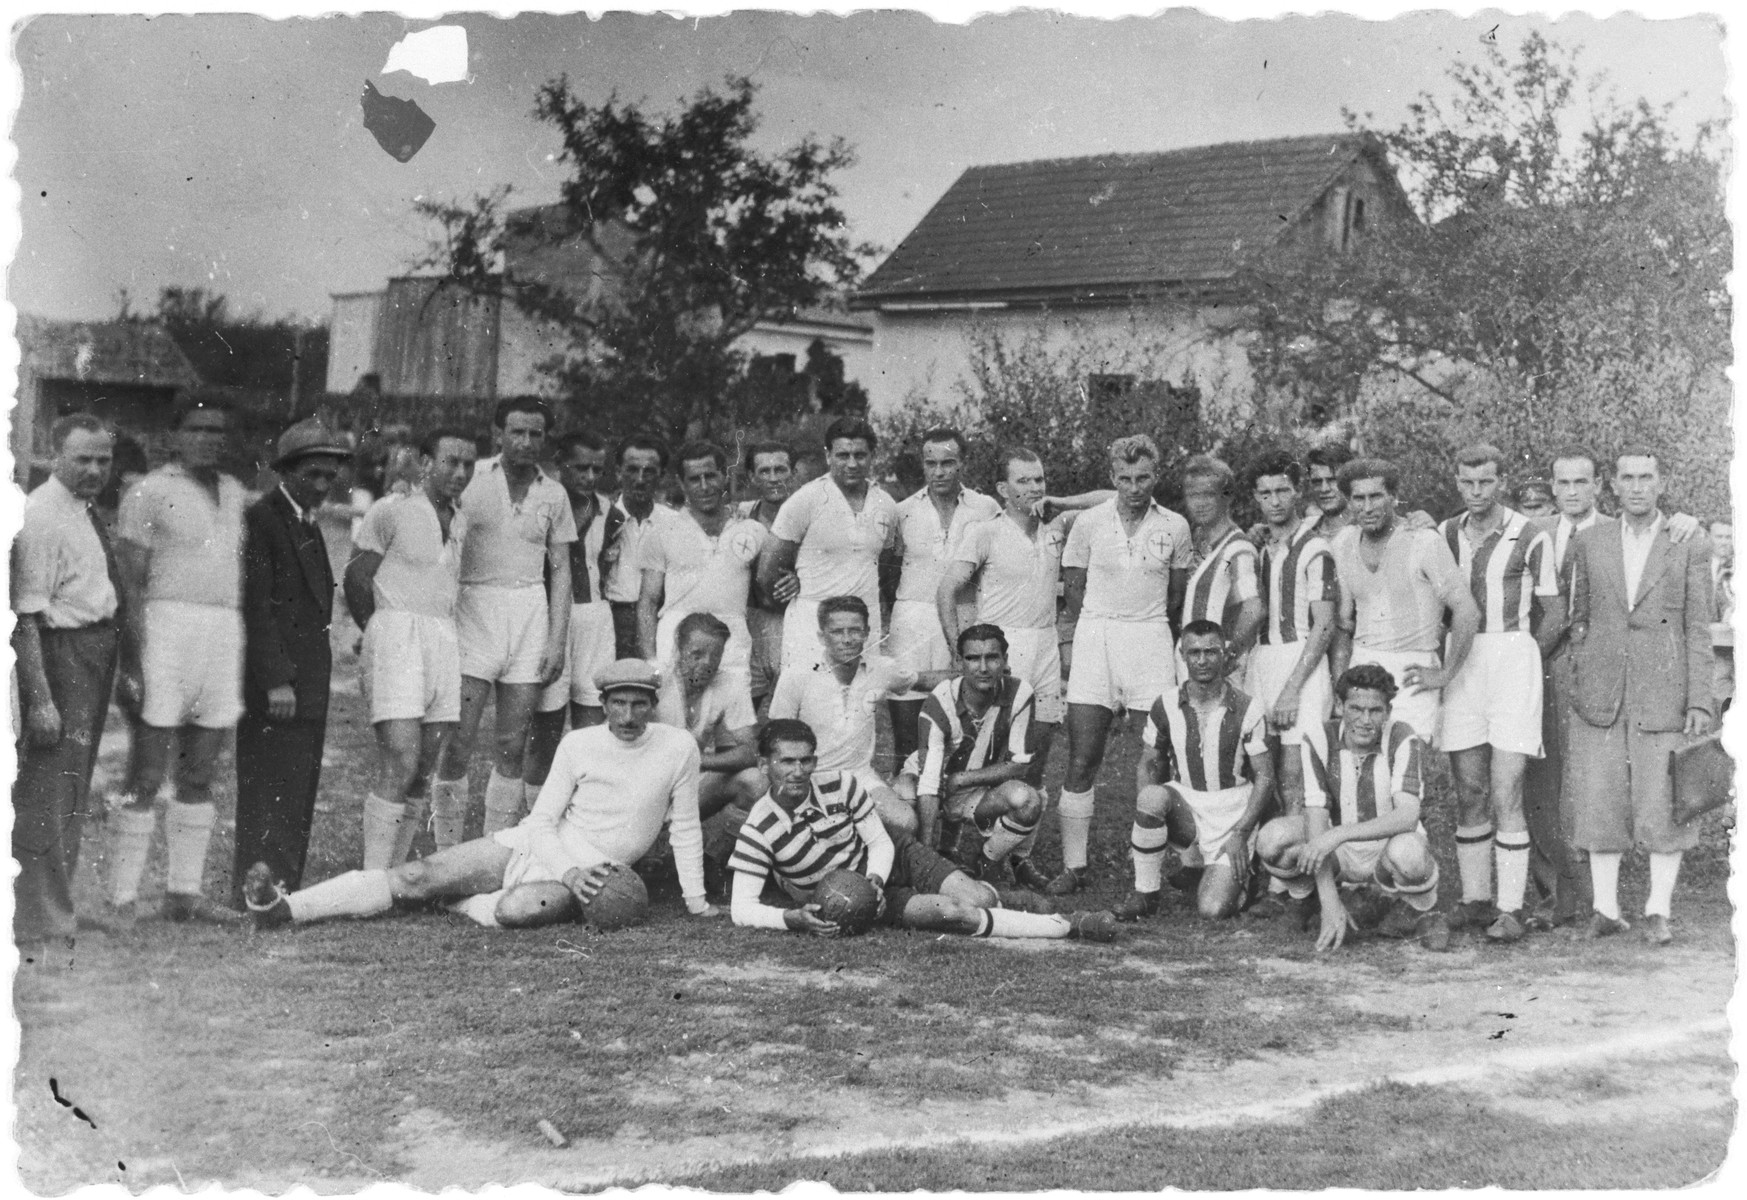 Members of the Samson soccer club in Sighet.  Those pictured include Yossy Kaufman (half back) and Herman Tessler (center forward).